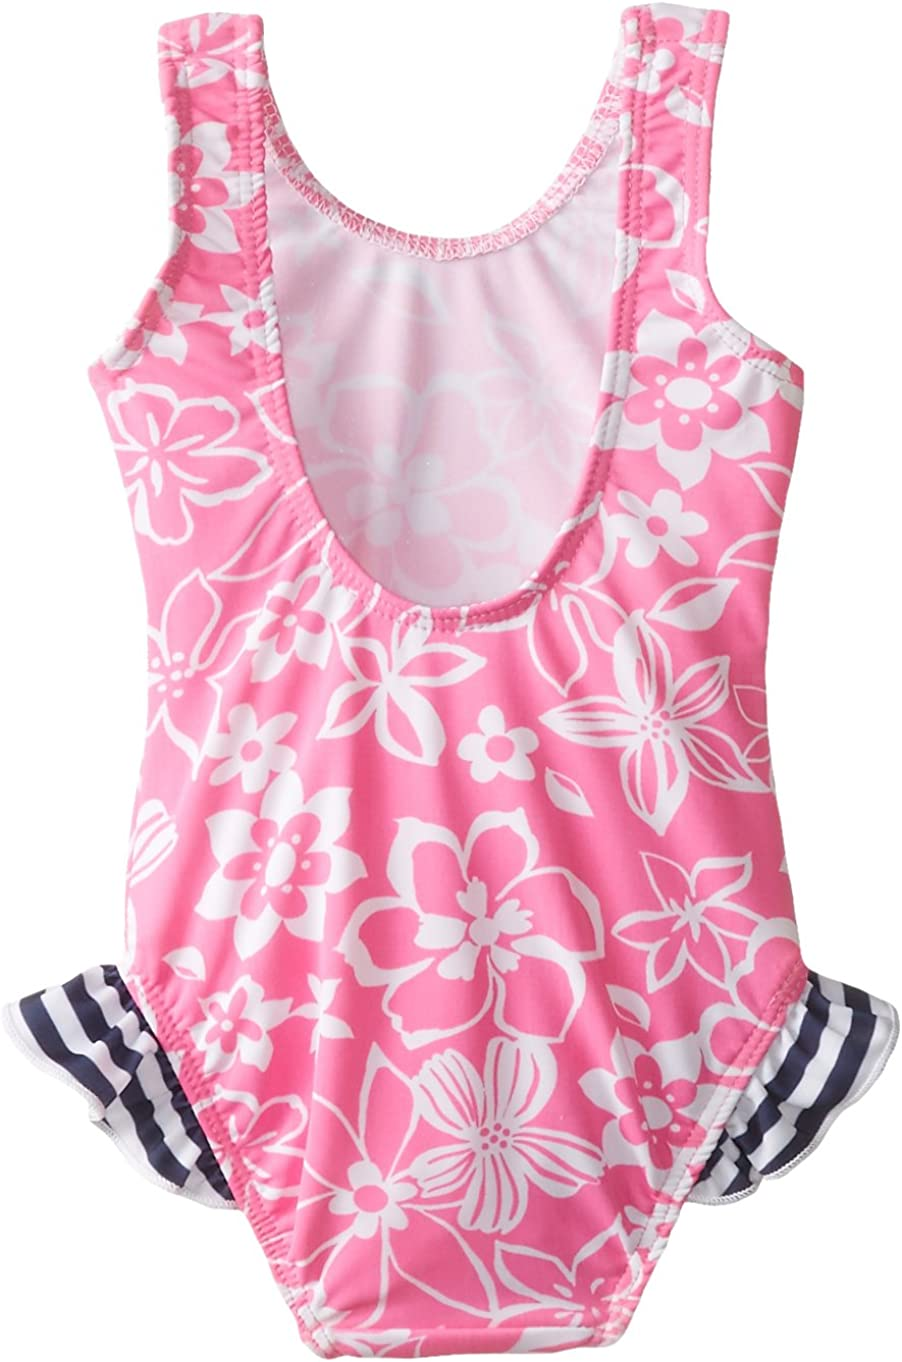 Flap Happy Baby Girls Delaney Hip Ruffle Swimsuit In Polyester Spandex